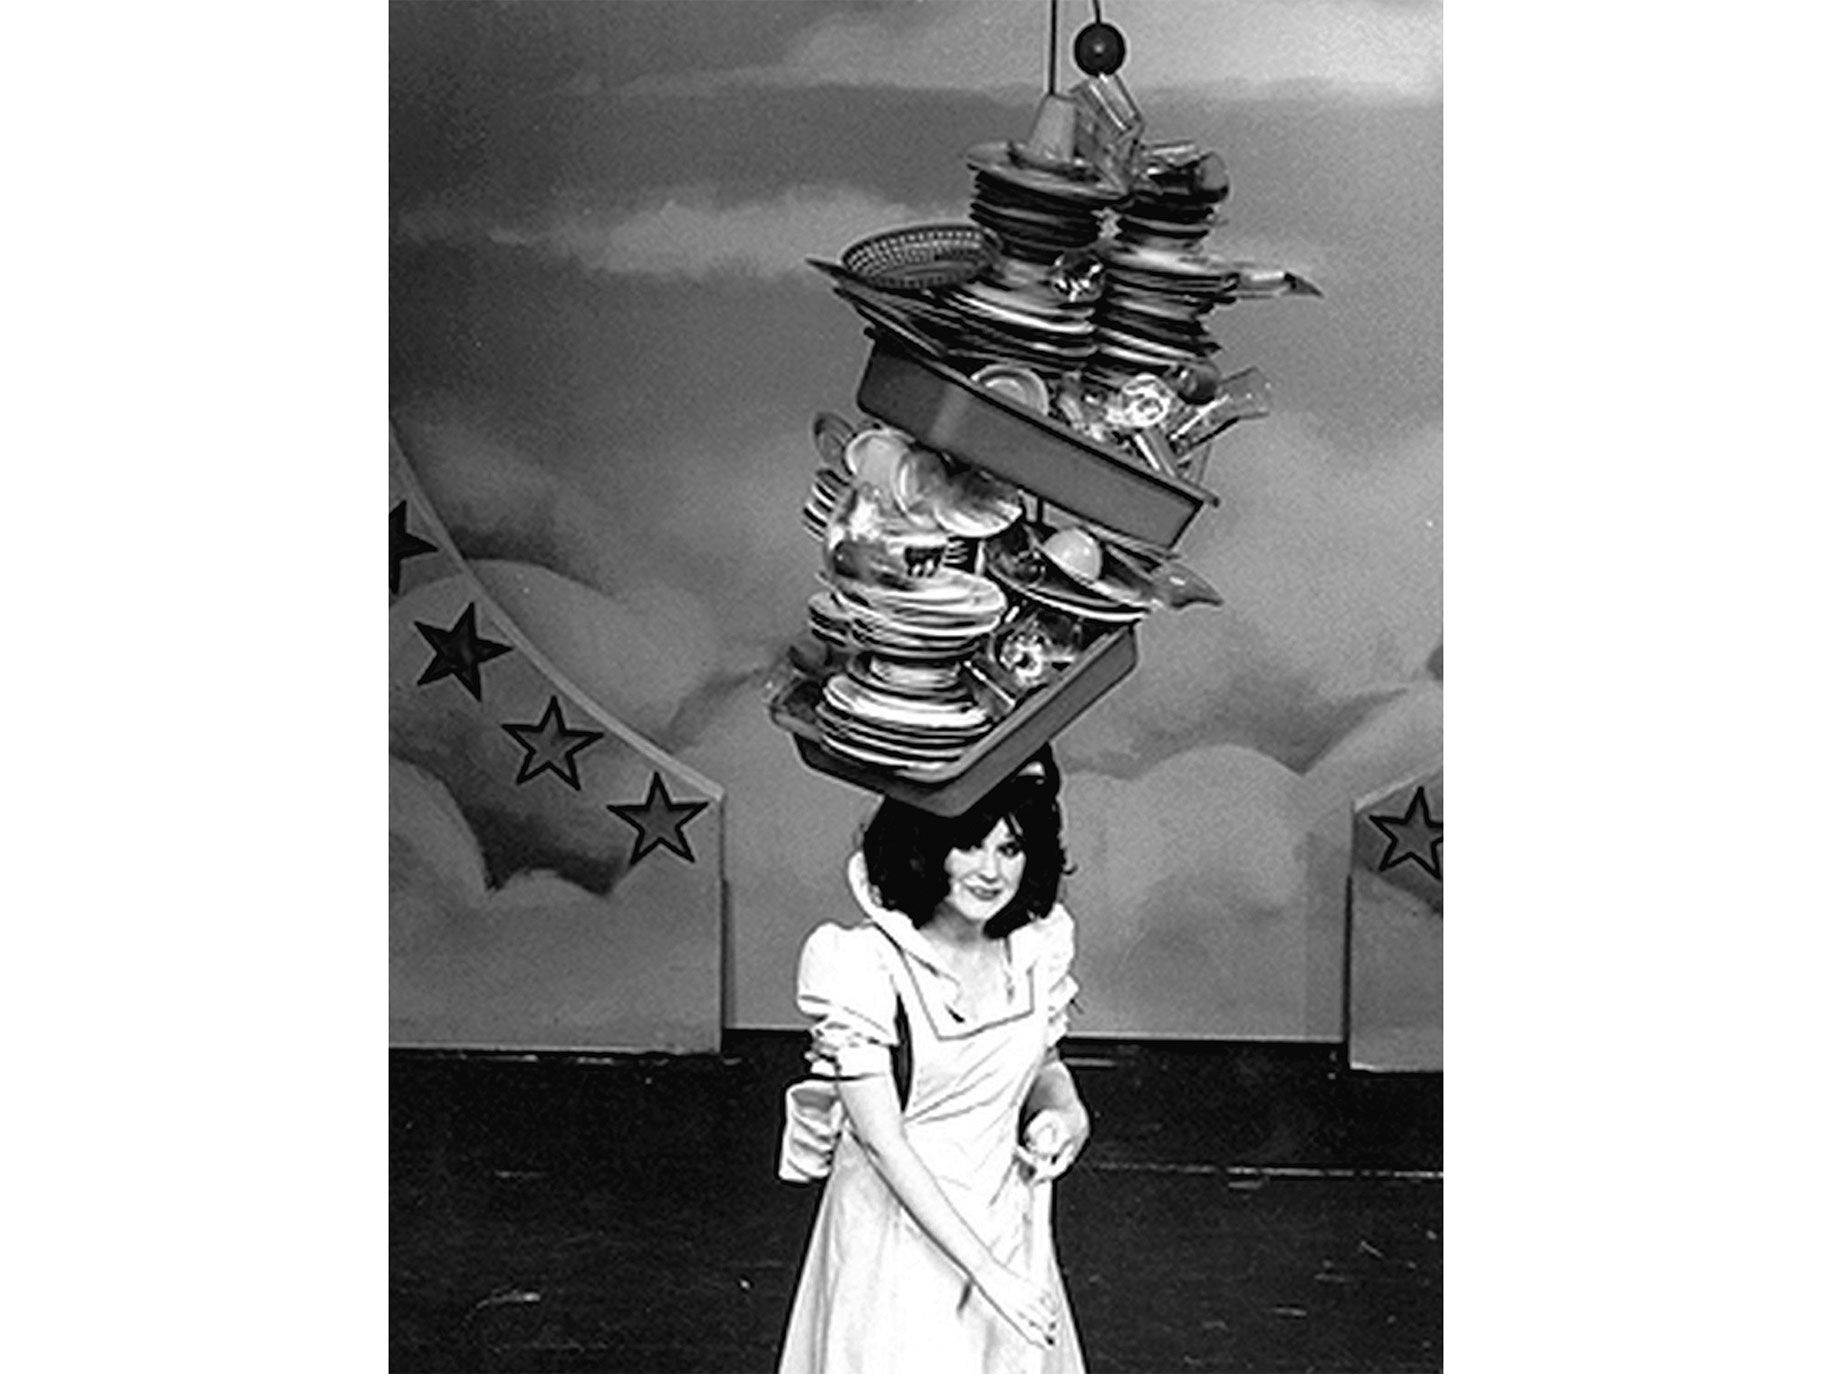 A height-defying chapeau known as the Dish Hat, 1978.